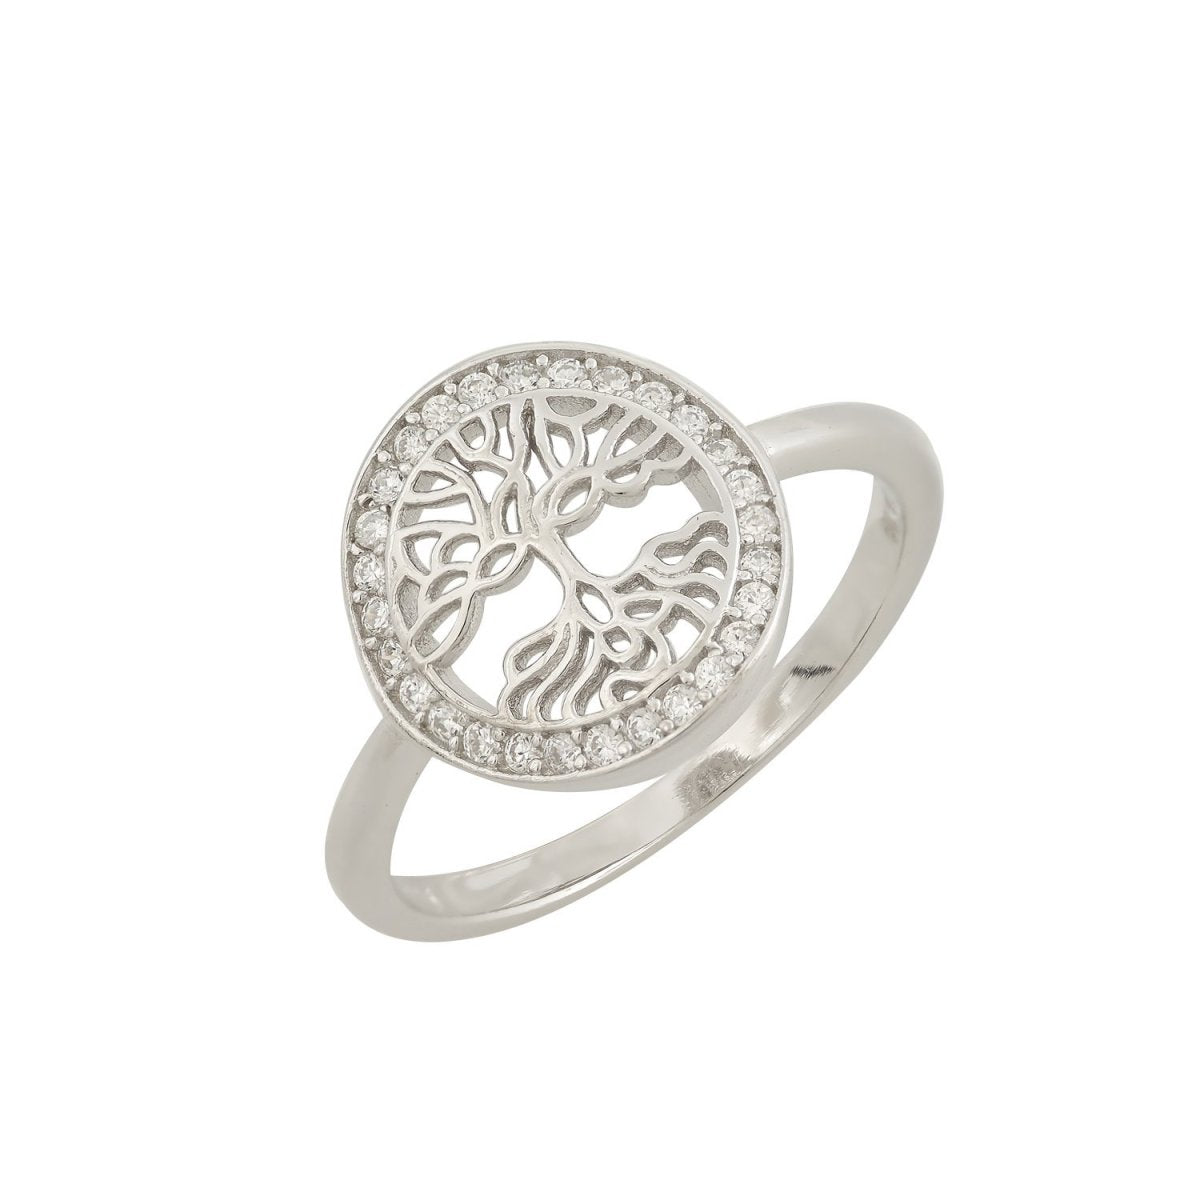 Ring Tree of Life RS3577 Platinum Plating - Goldy Jewelry Store